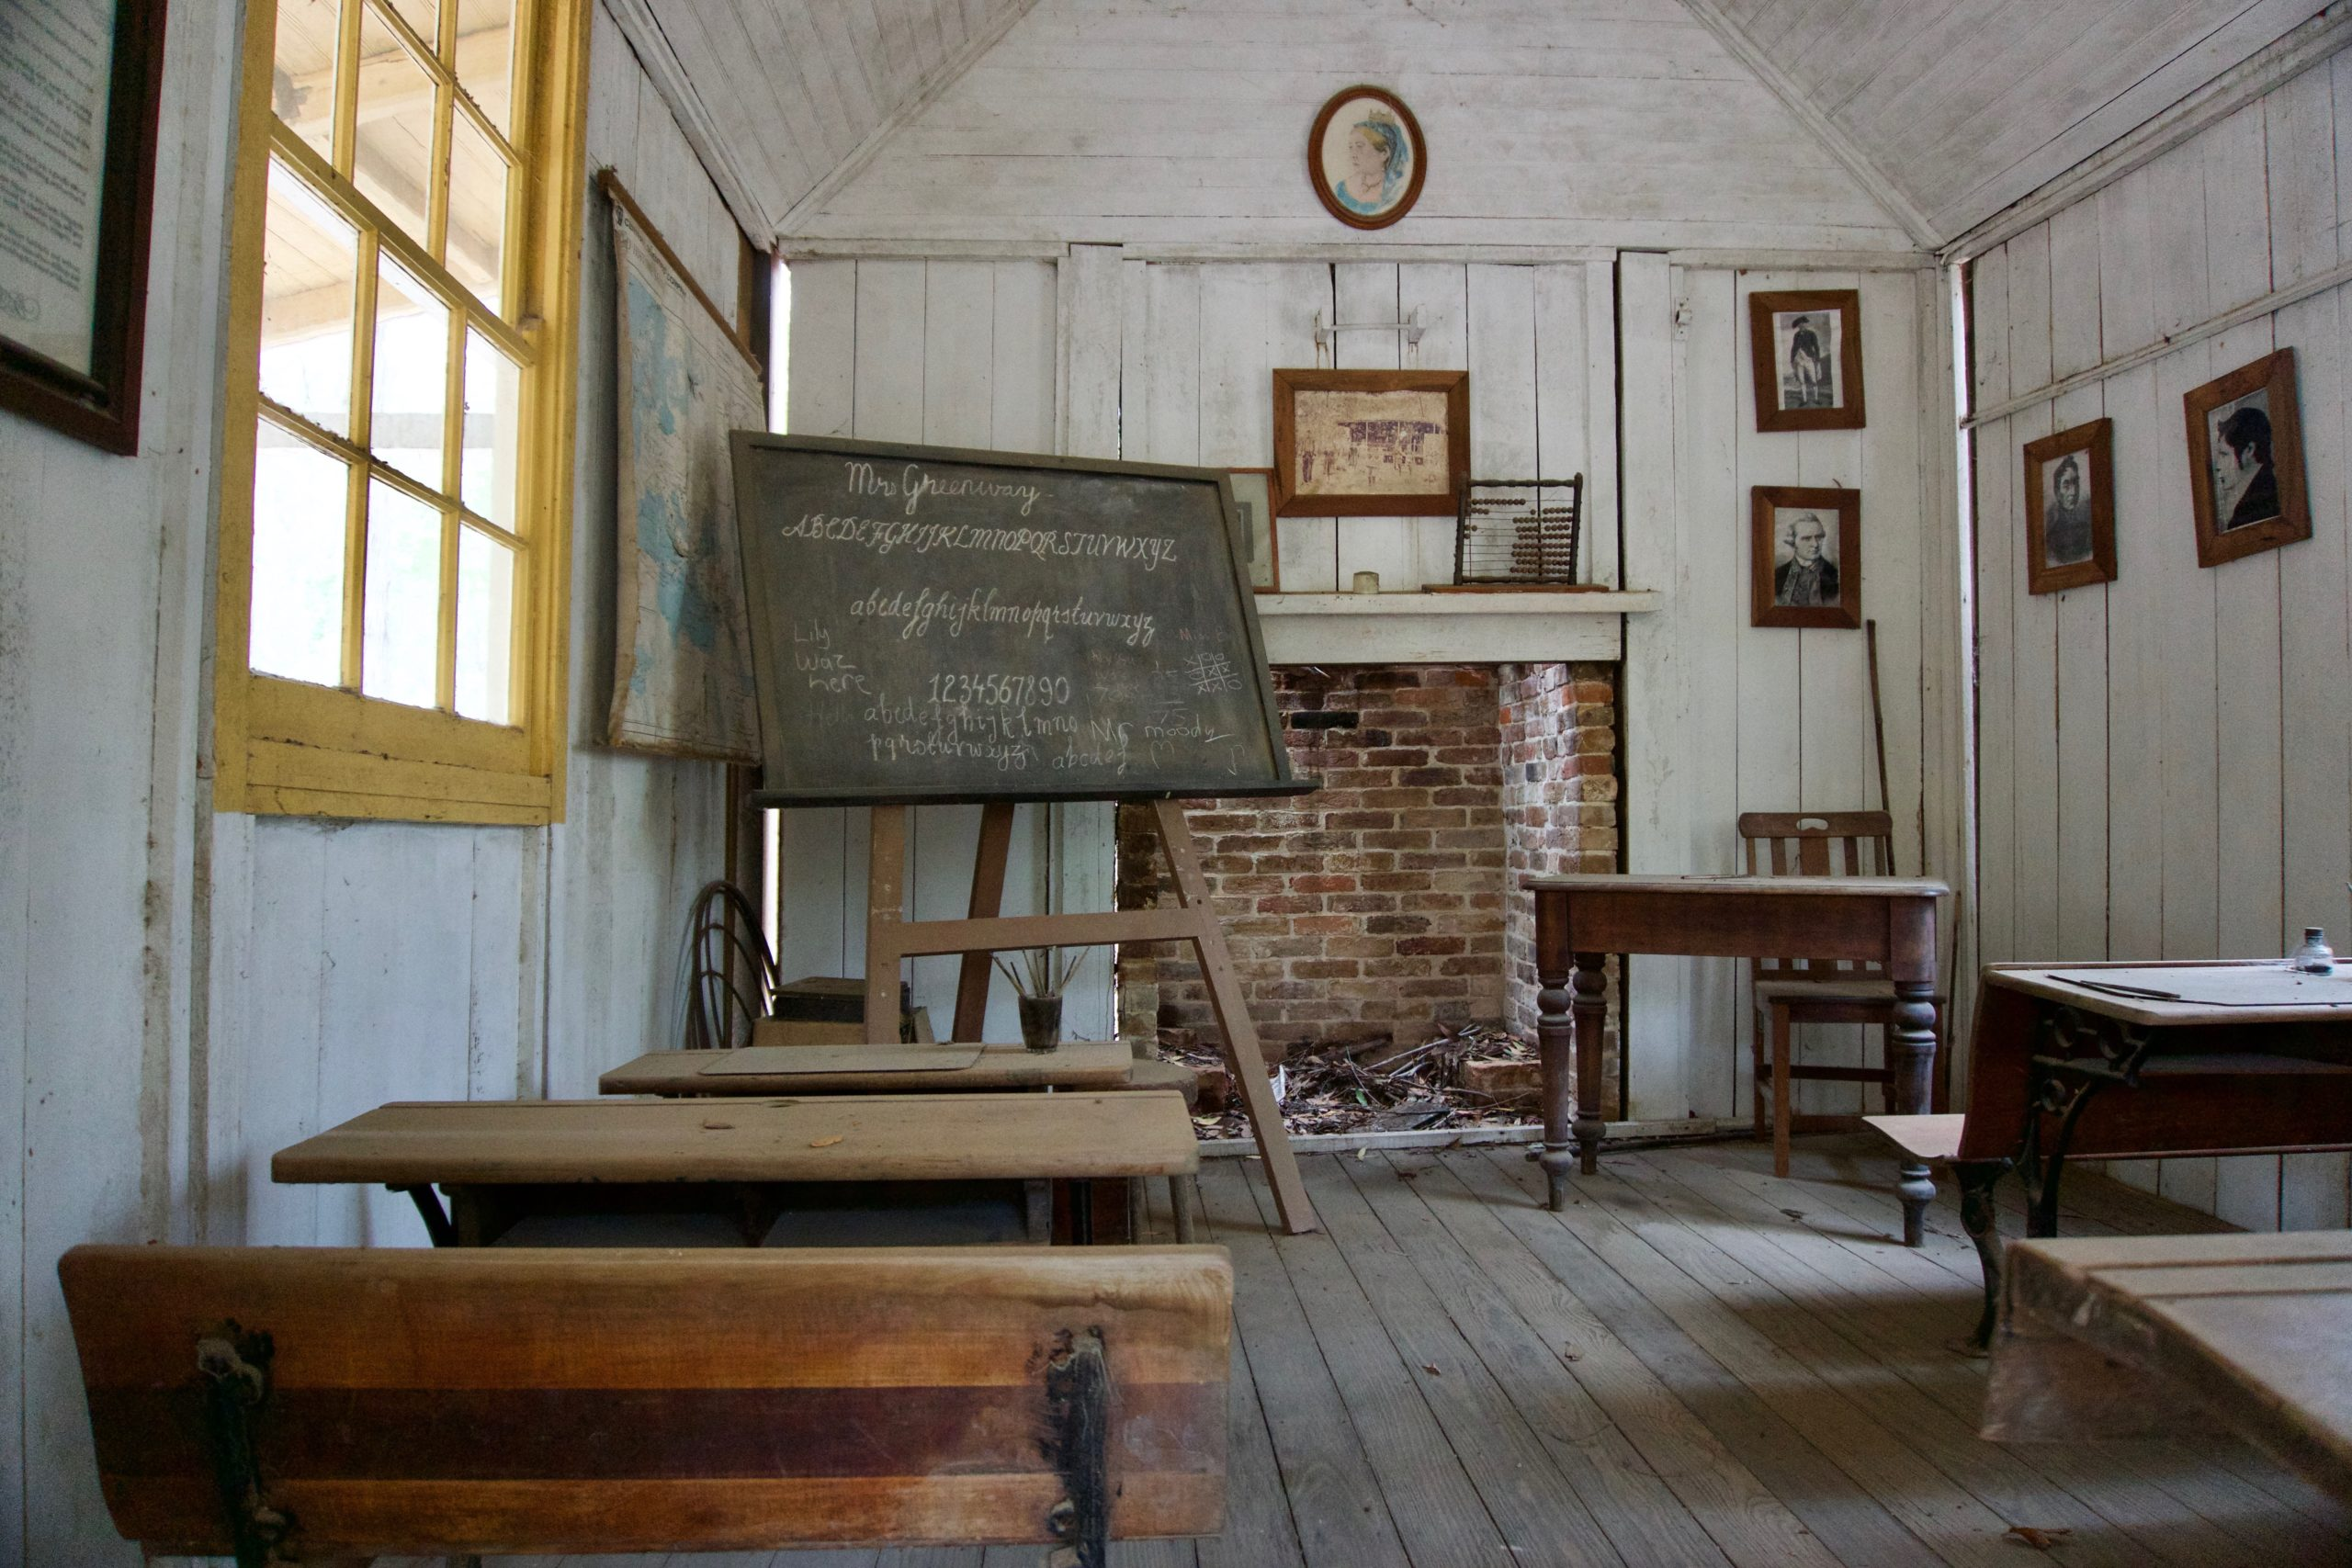 A very old classroom with wooden desks, a brick fireplace, and a blackboard on an easel. On the blackboard is the English alphabet written in cursive.